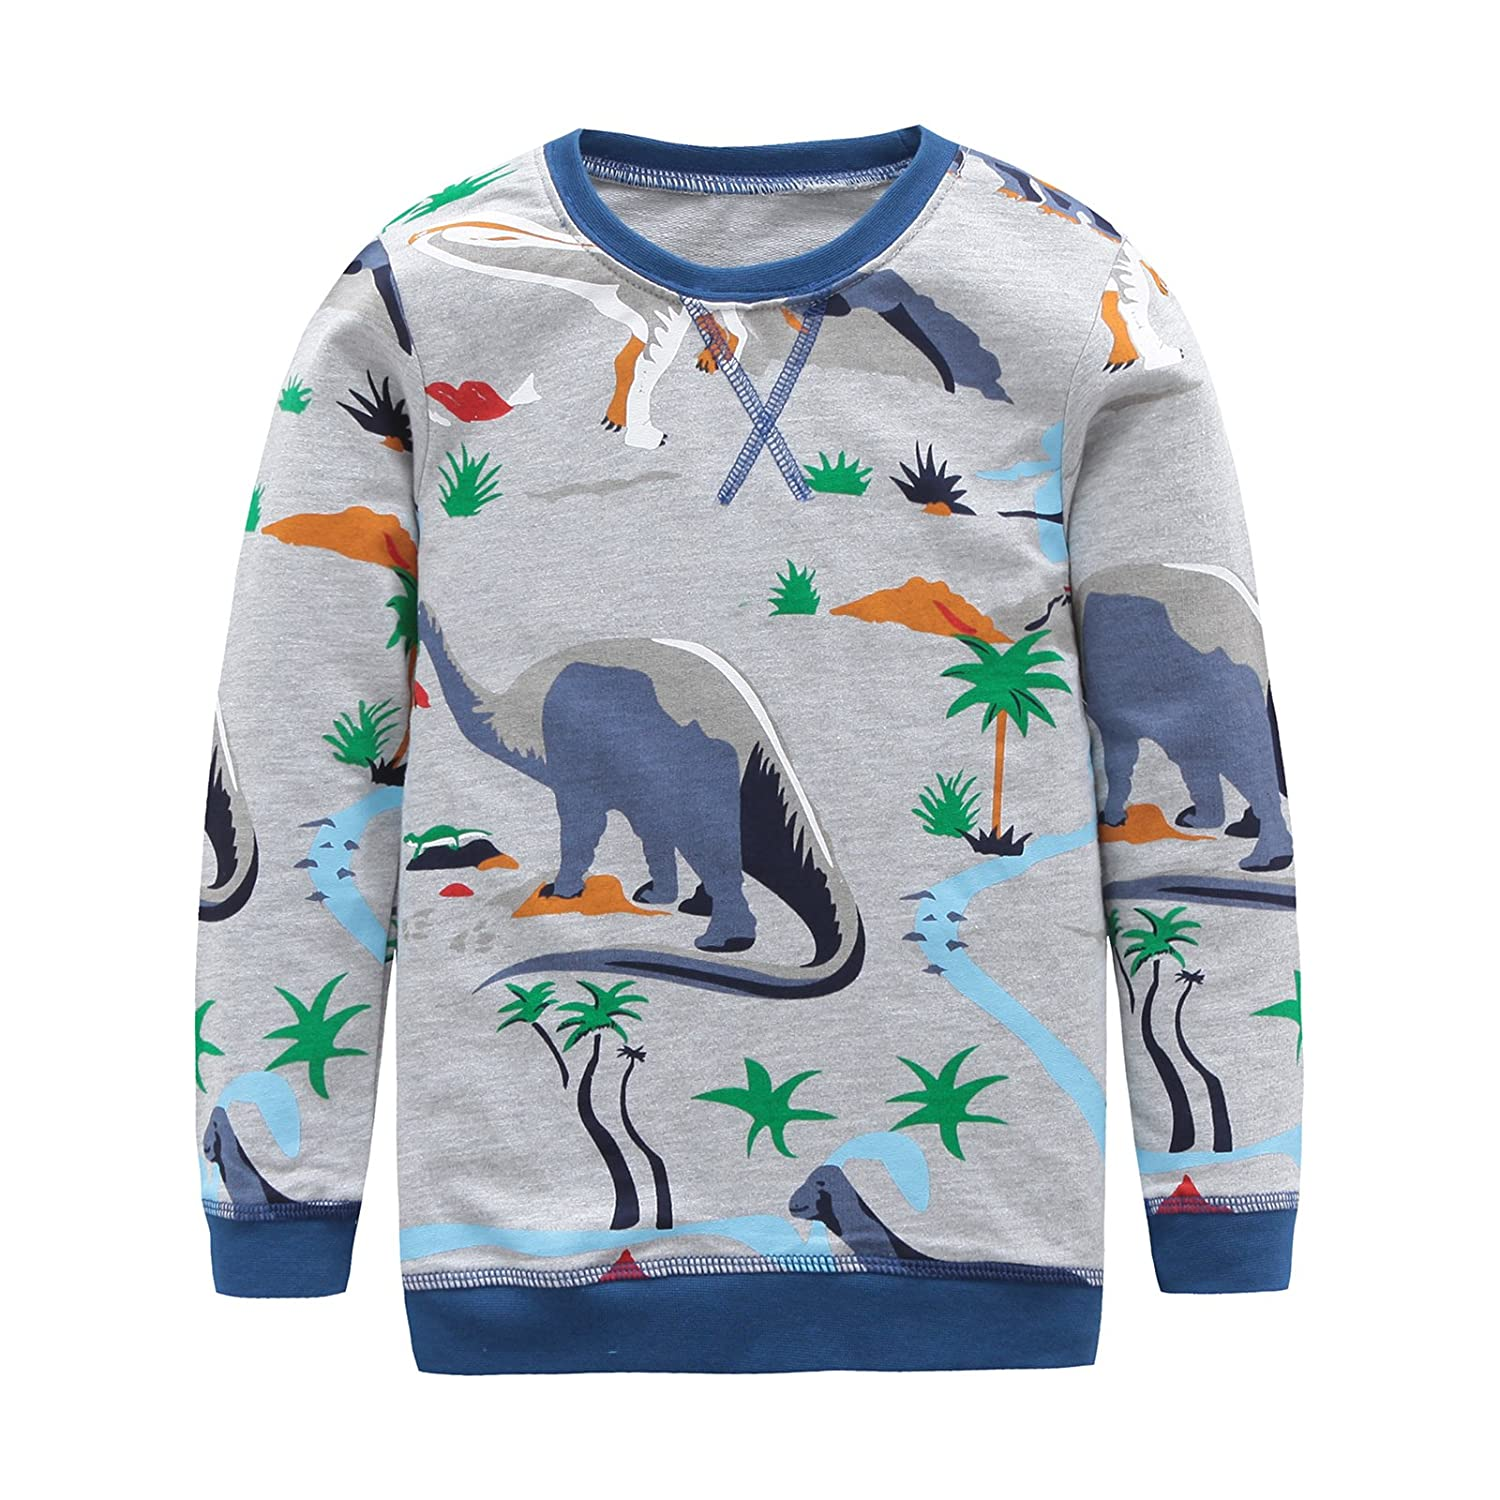 HowJoJo Boys Cotton Long Sleeve T-Shirts T Rex Dinosaur Shirt Graphic Tees